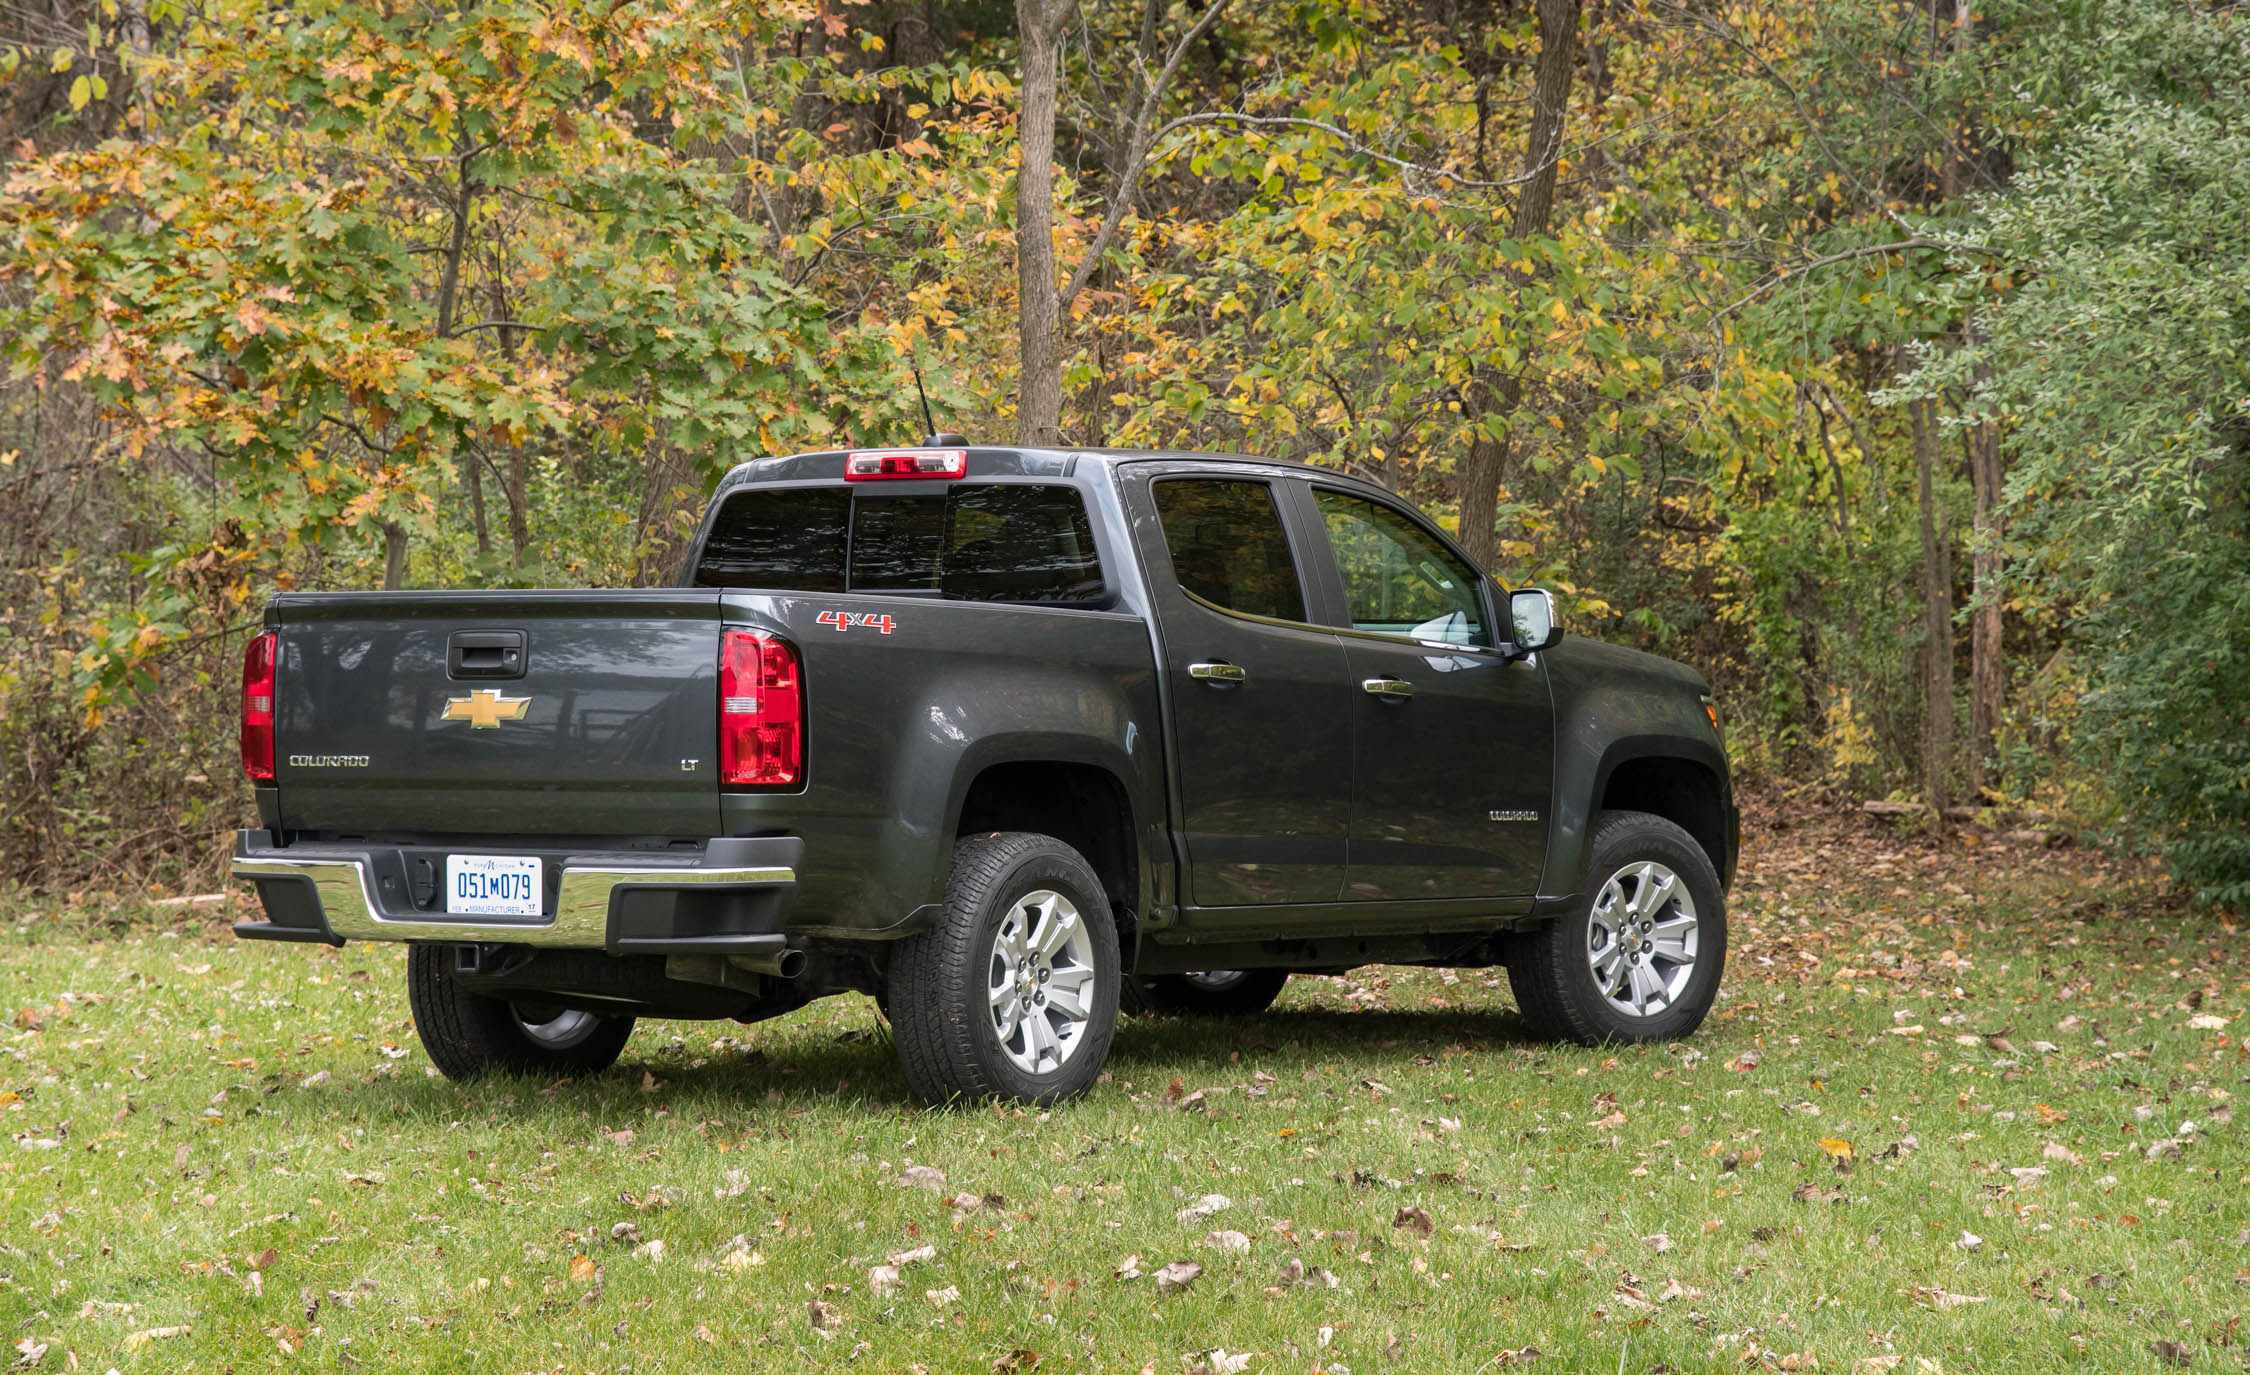 2017 Chevrolet Colorado LT Exterior Side And Rear (View 25 of 41)